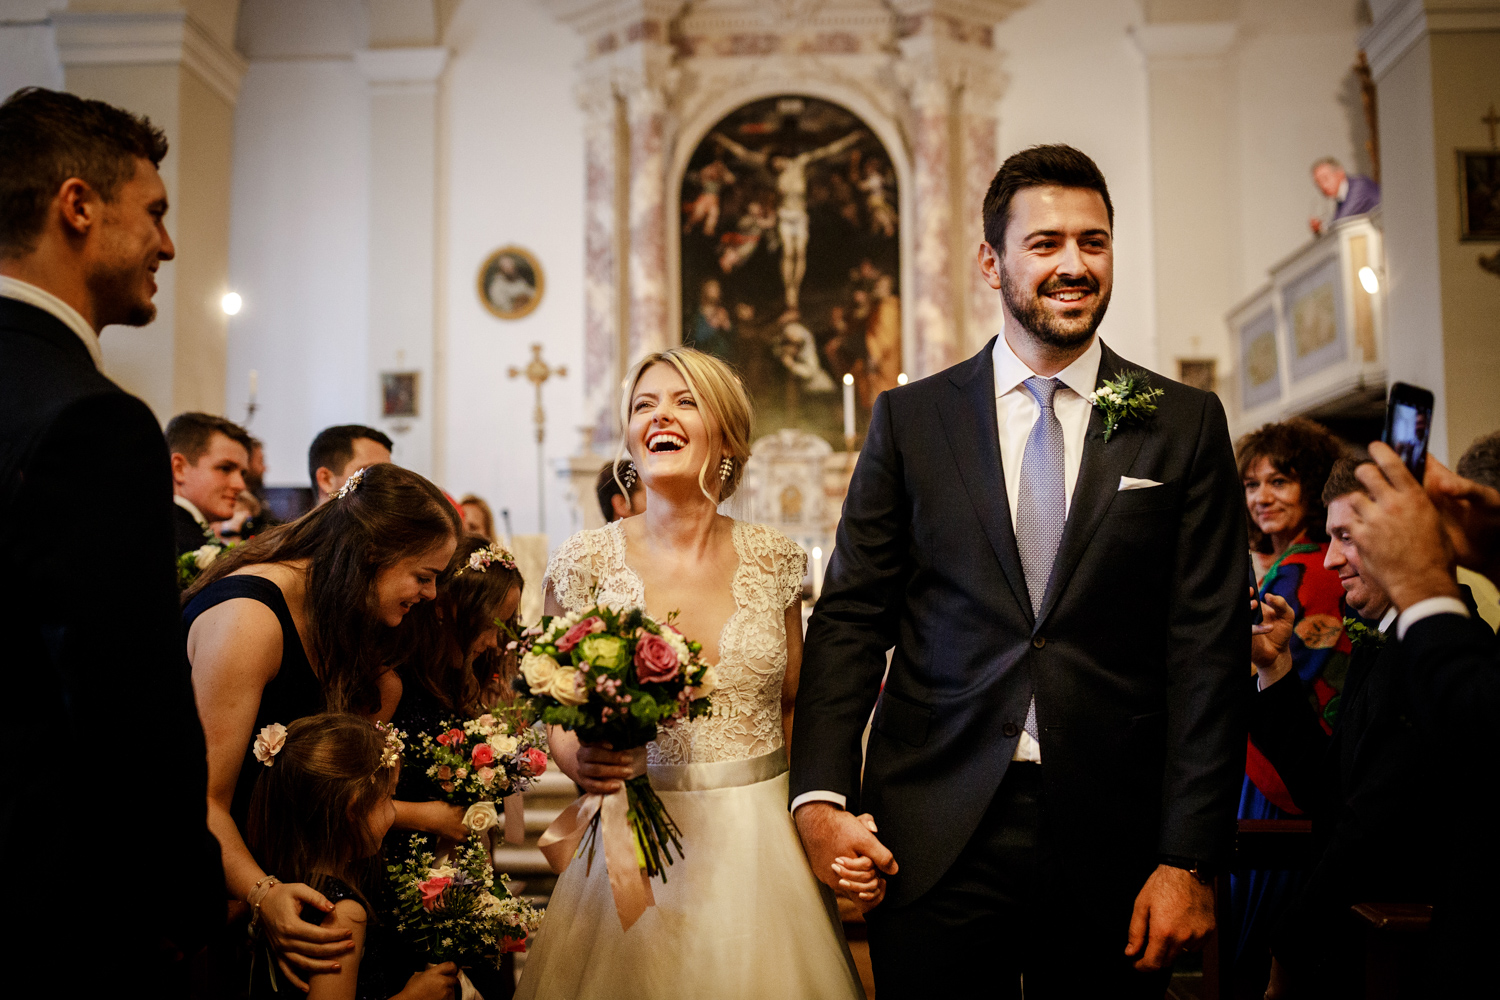 Villa Catignano wedding in Italy